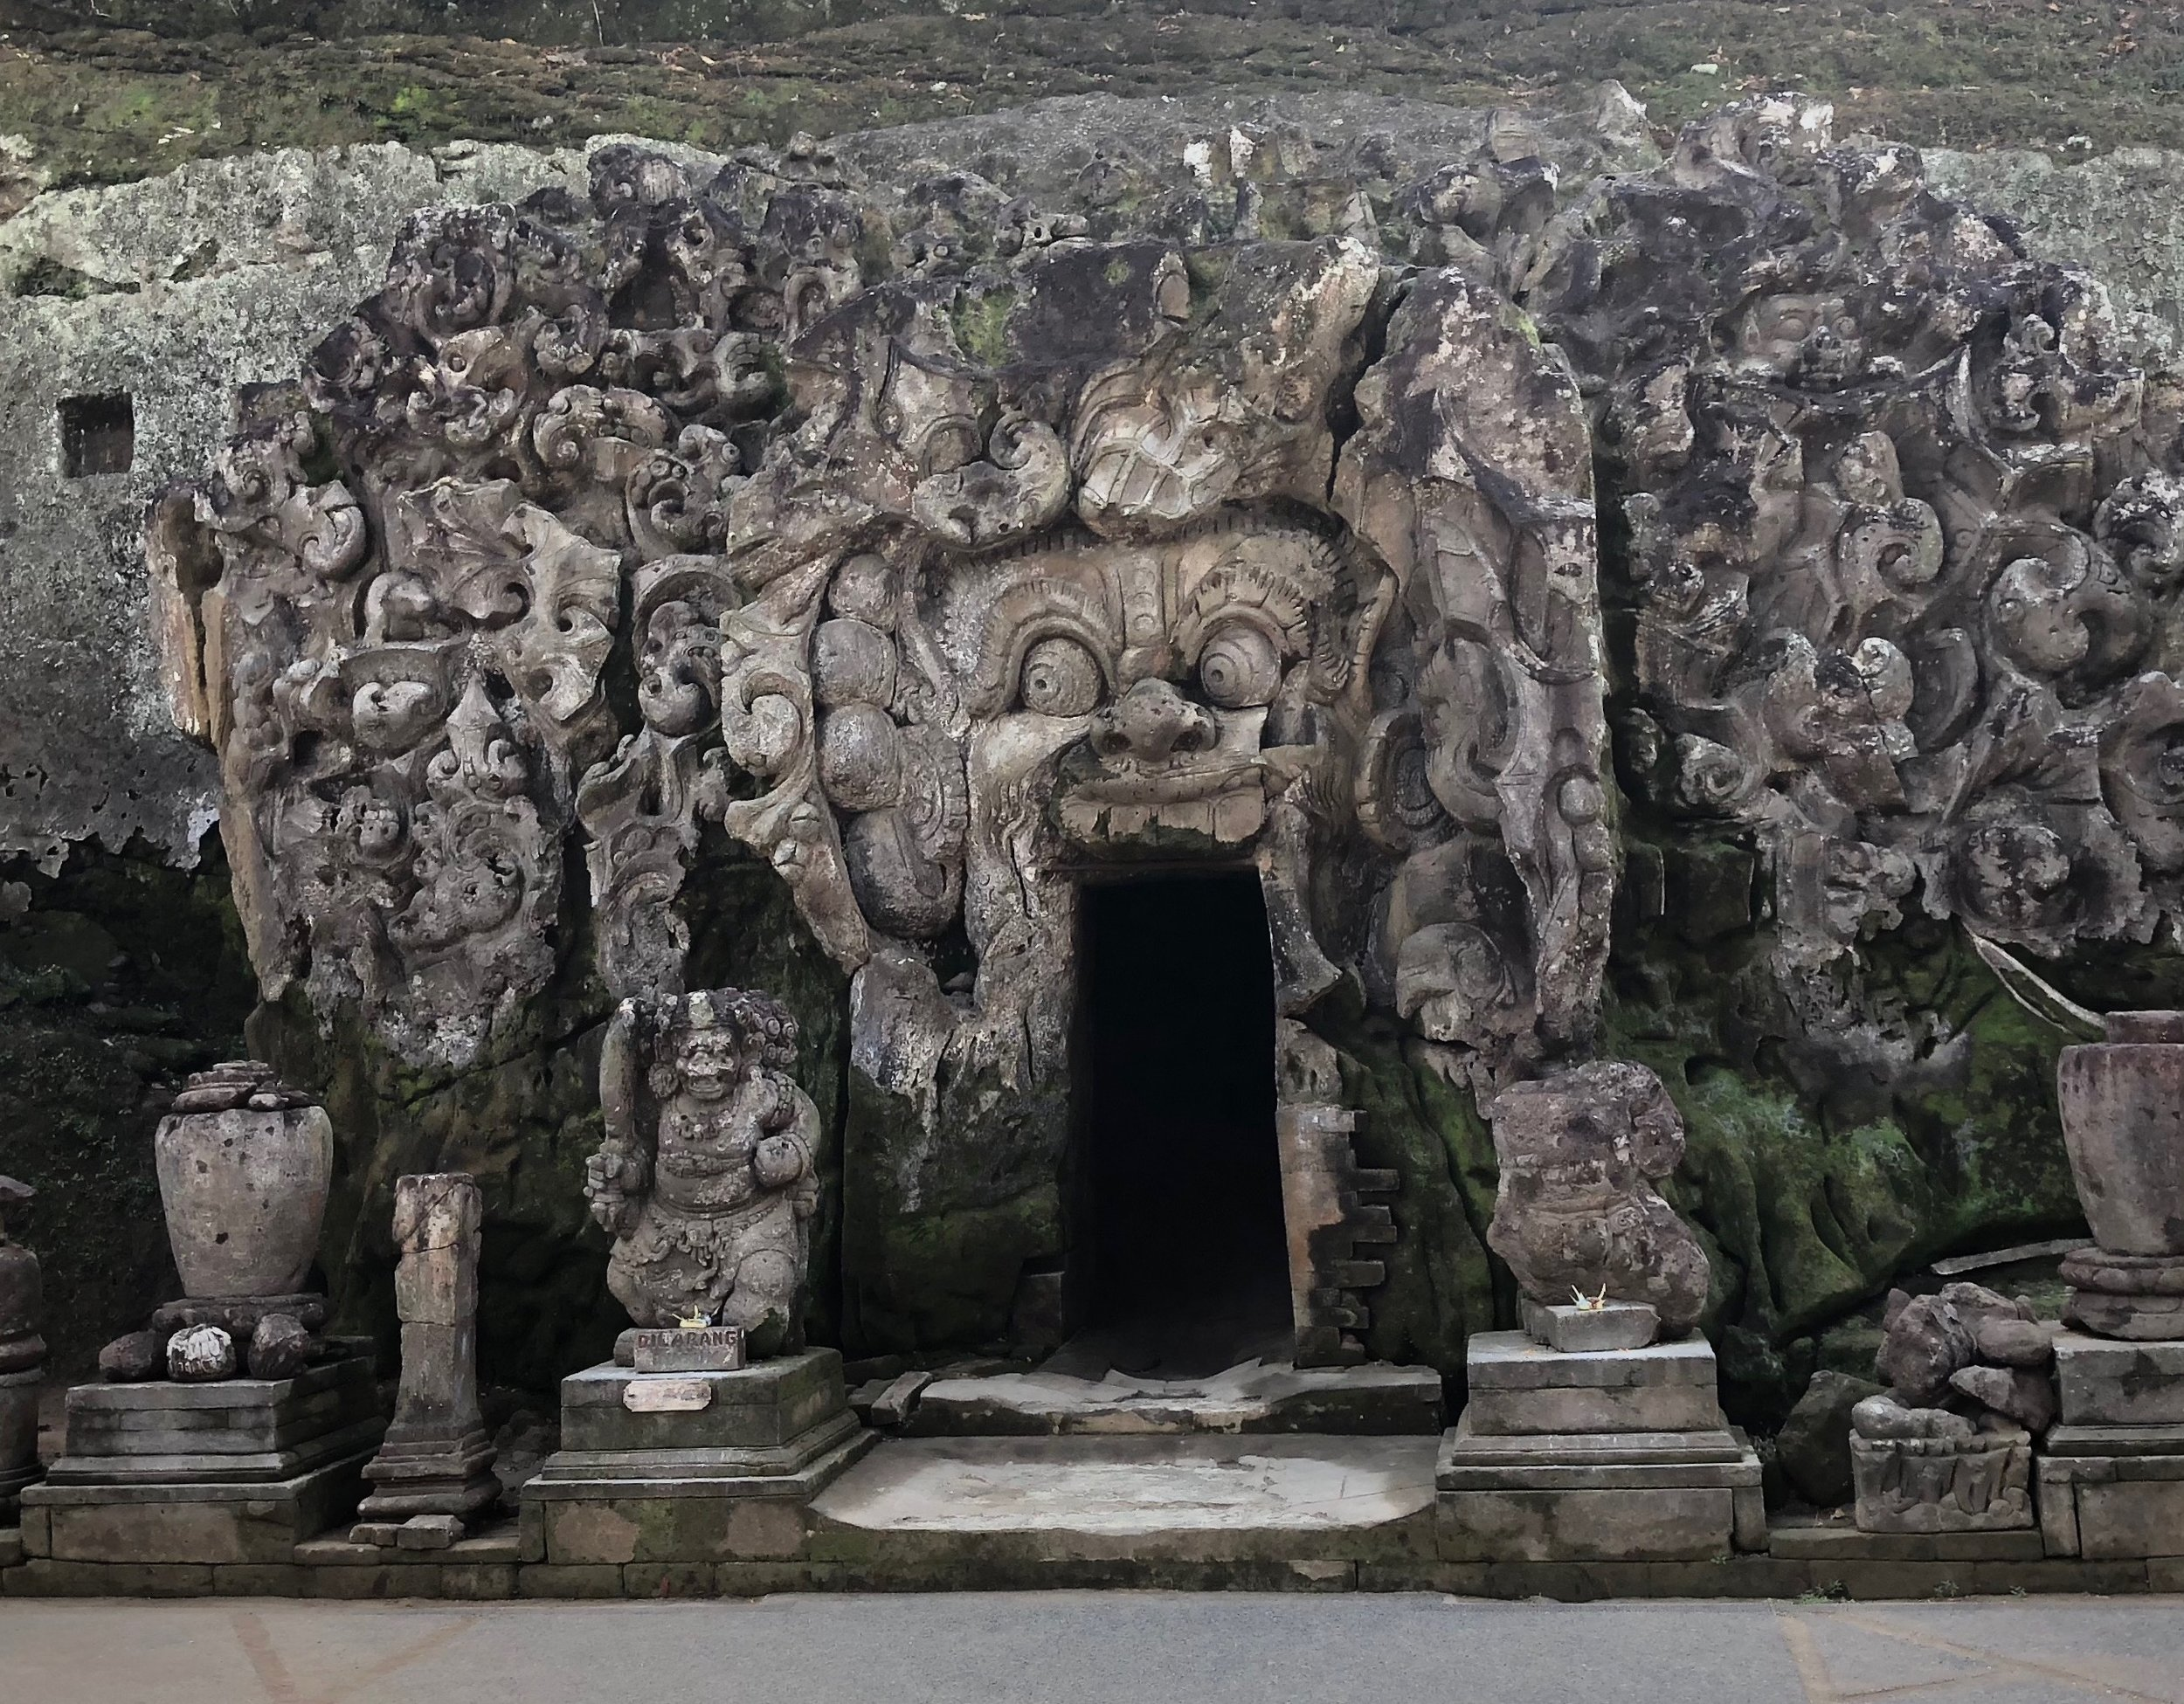 When staying in Ubud, make a quick stop to see the monster mouth at Goa Gajah